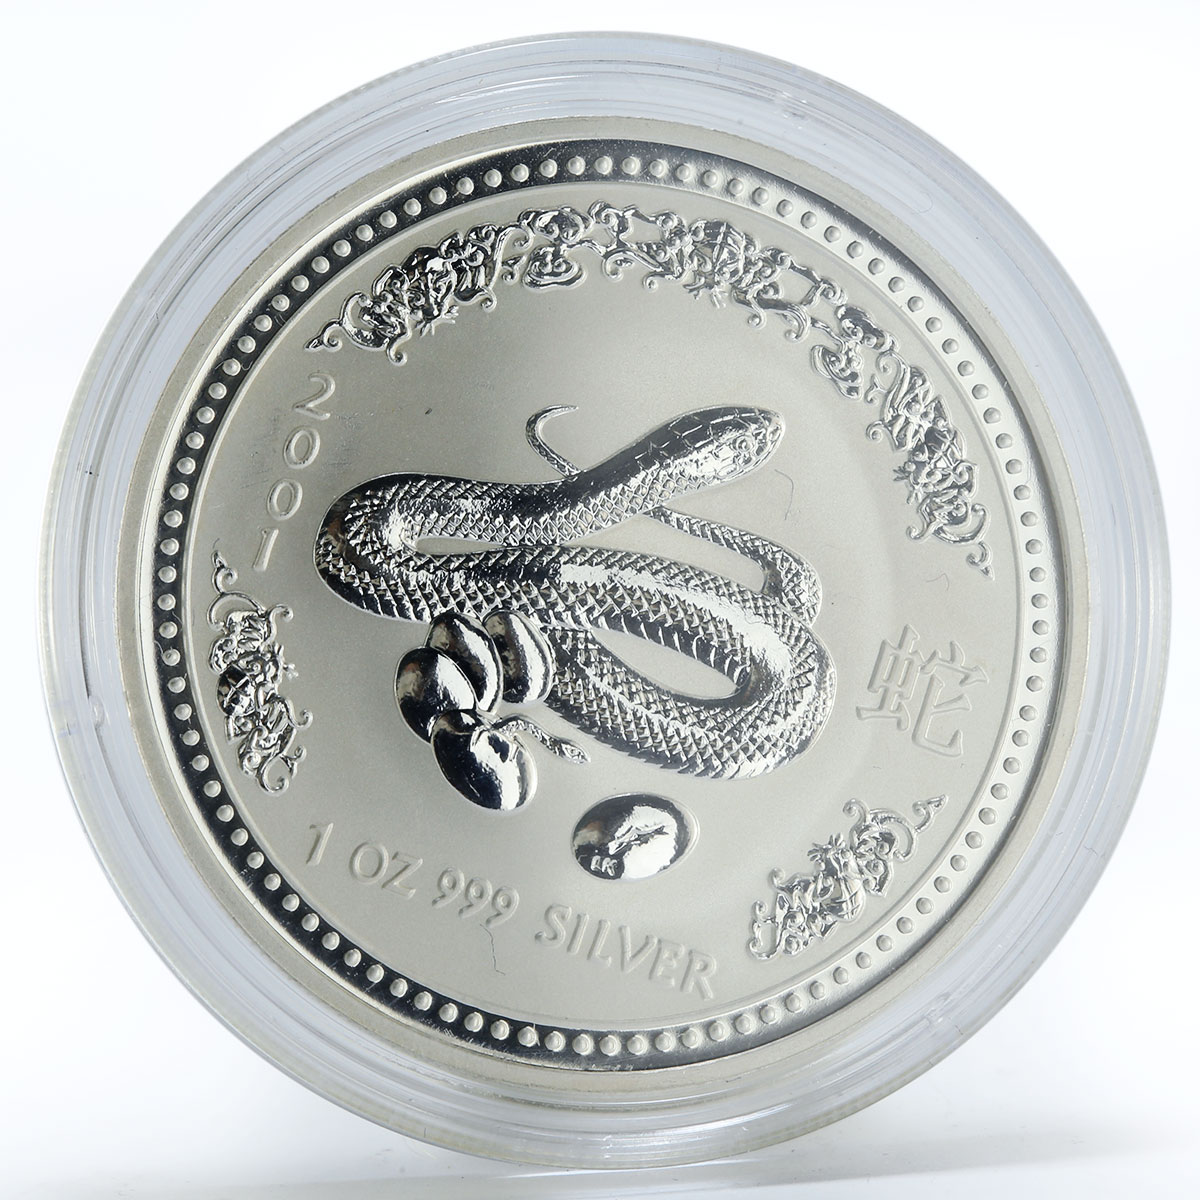 Australia 1 Dollar Year of the Snake Lunar Series I silver coin 2001